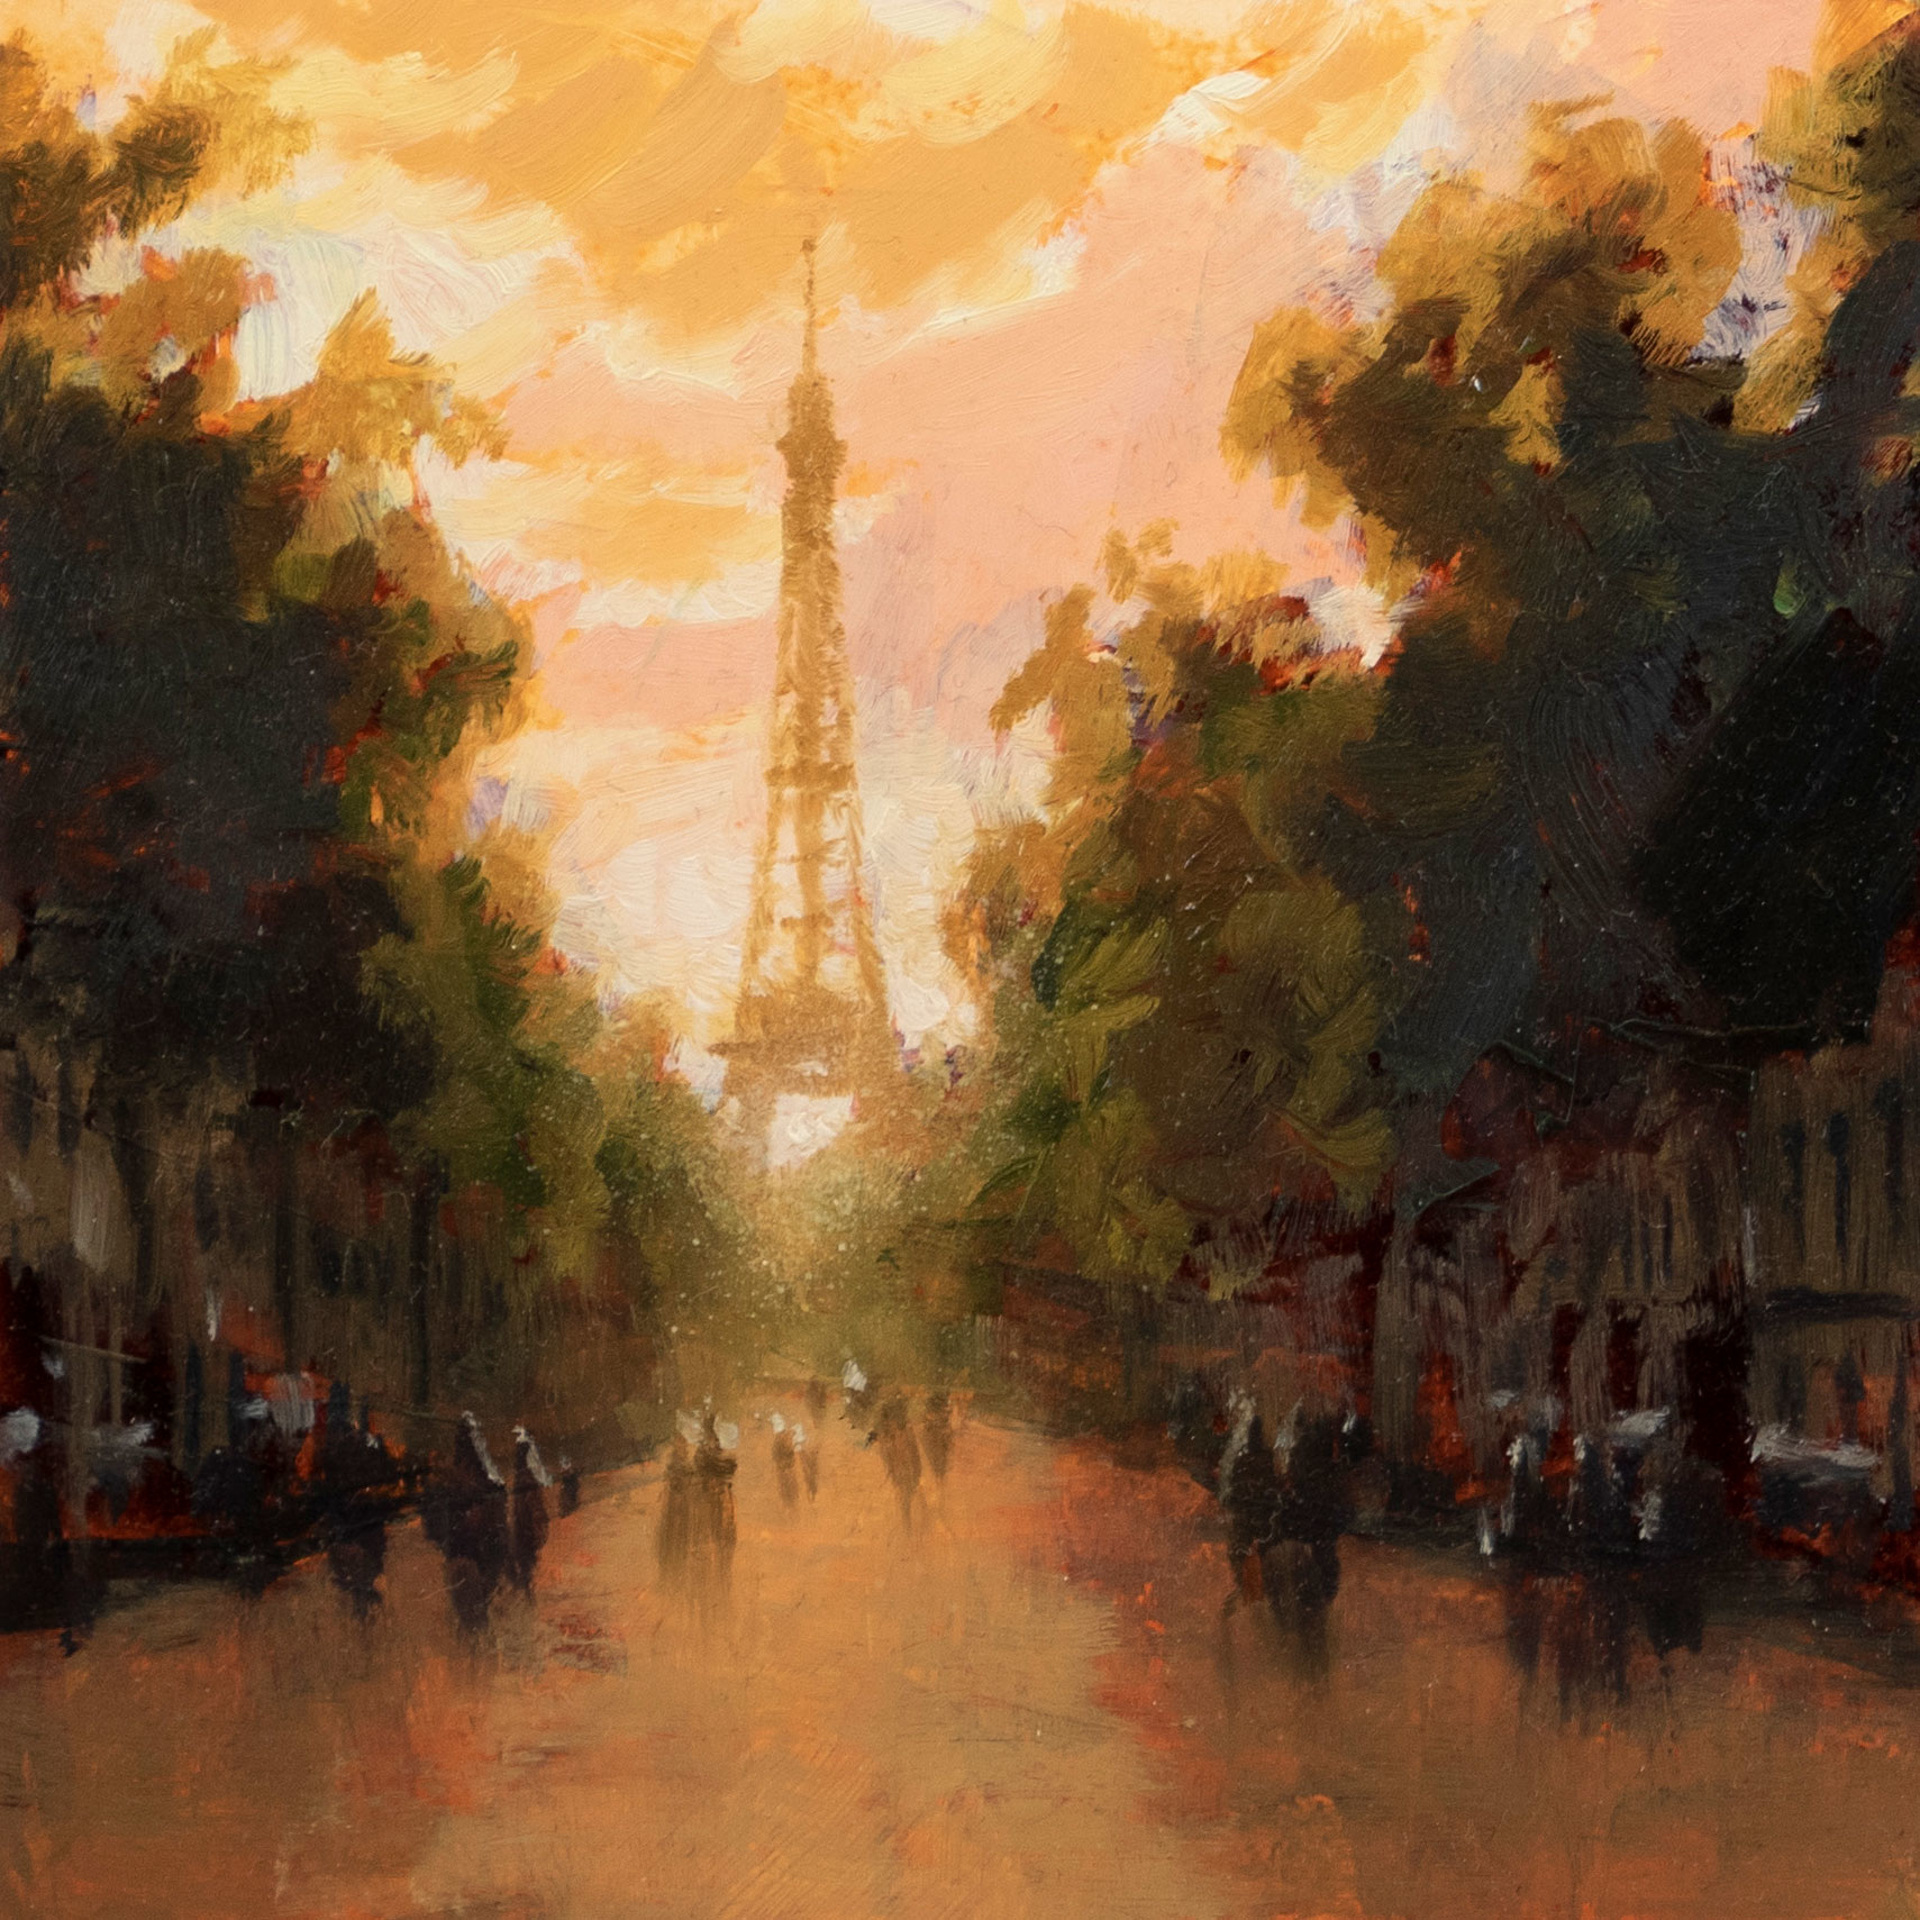 Story of Paris, Volume II by Christopher Clark